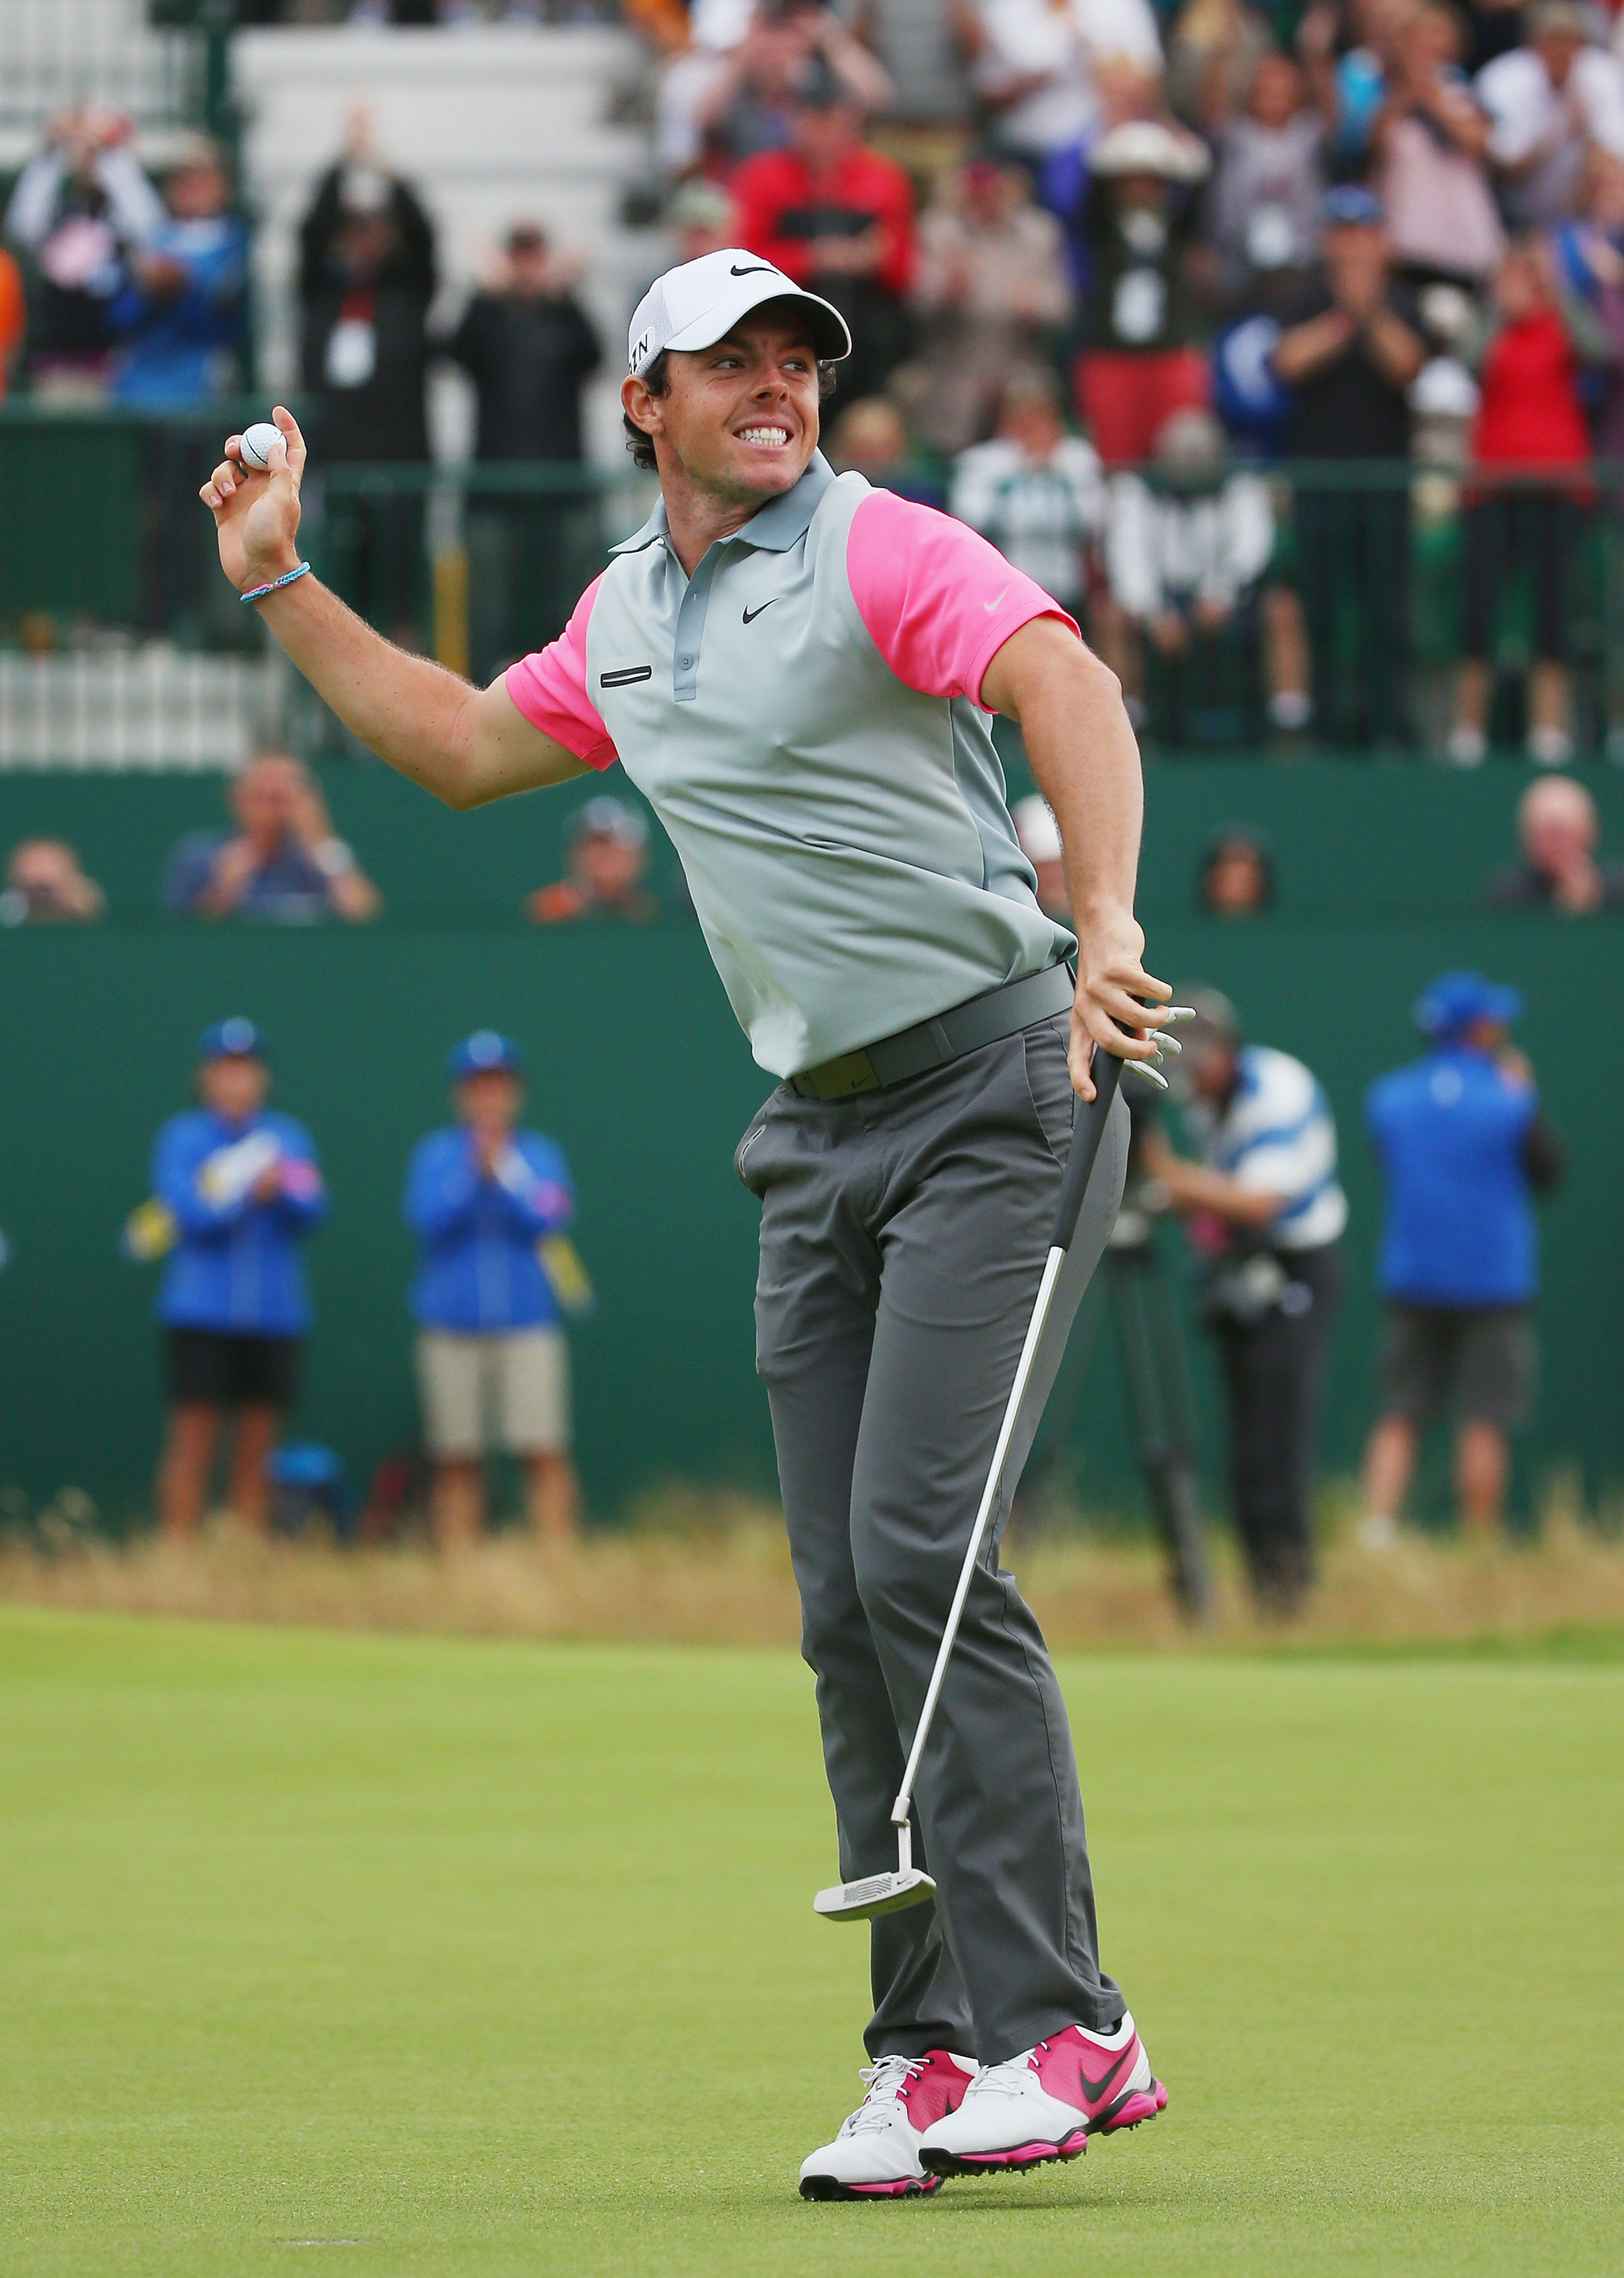 Rory McIlroy tells Liverpool crowd he's Man United fan, gets booed